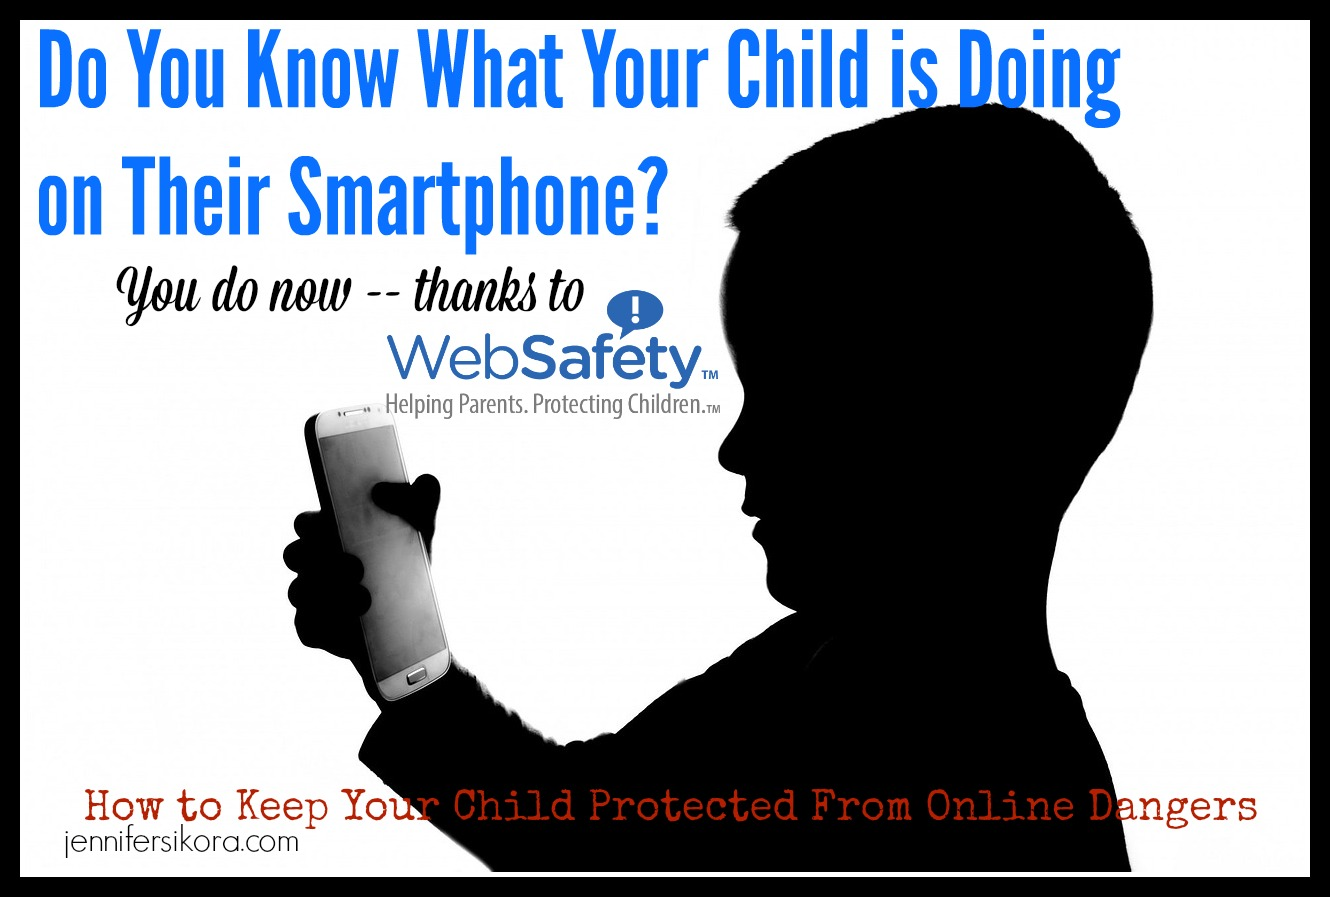 Keeping Your Kids Safe with the WebSafety App